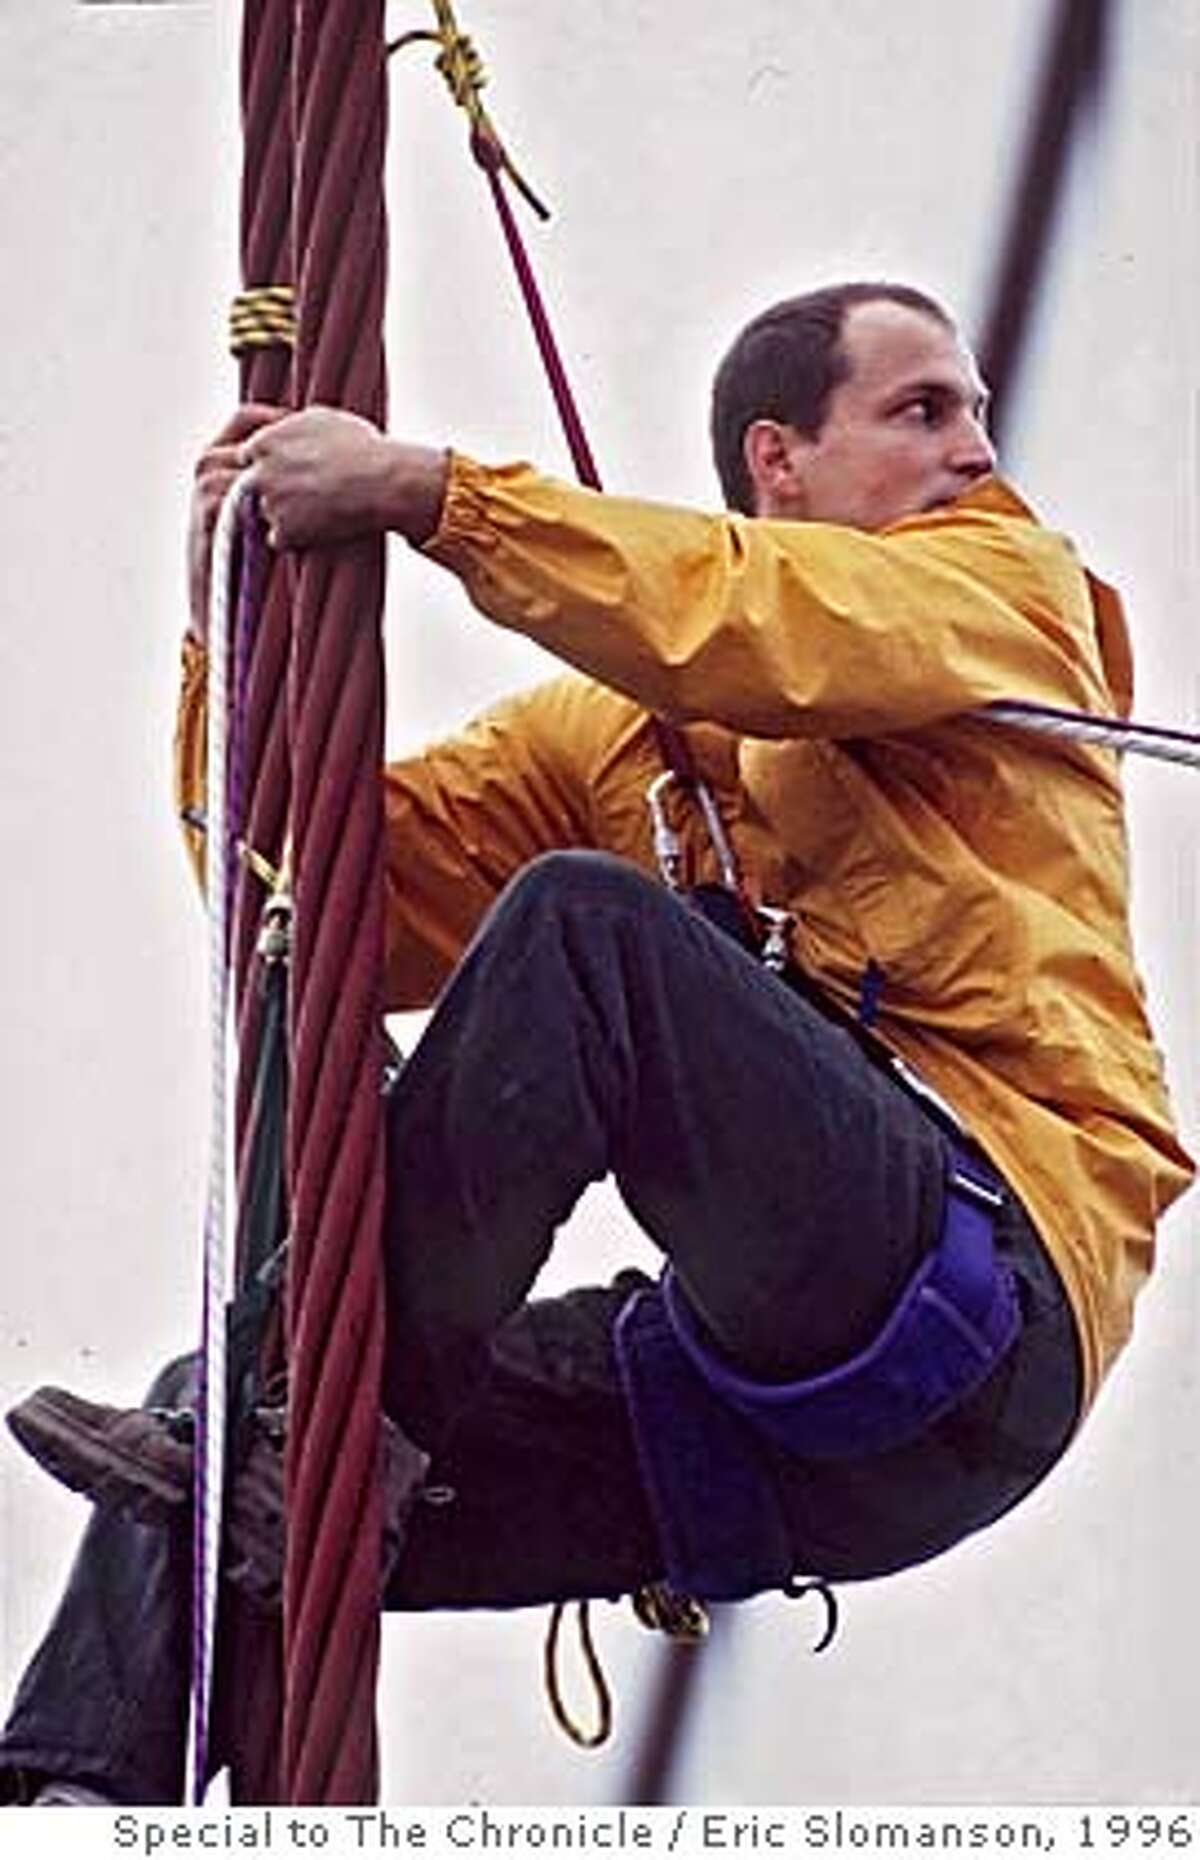 WOODY-BRIDGE/c/23NOV96/MN/FREE;ES ---- is shown climbing on the supports of the Golden Gate Bridge during a Headwaters protest on November 23rd. He was arrested with other demonstrators, and was arraigned for the offense today (1/14/97) in SF. FILE Photo / Special to The Chronicle by Eric Slomanson ALSO RAN: 6/30/97